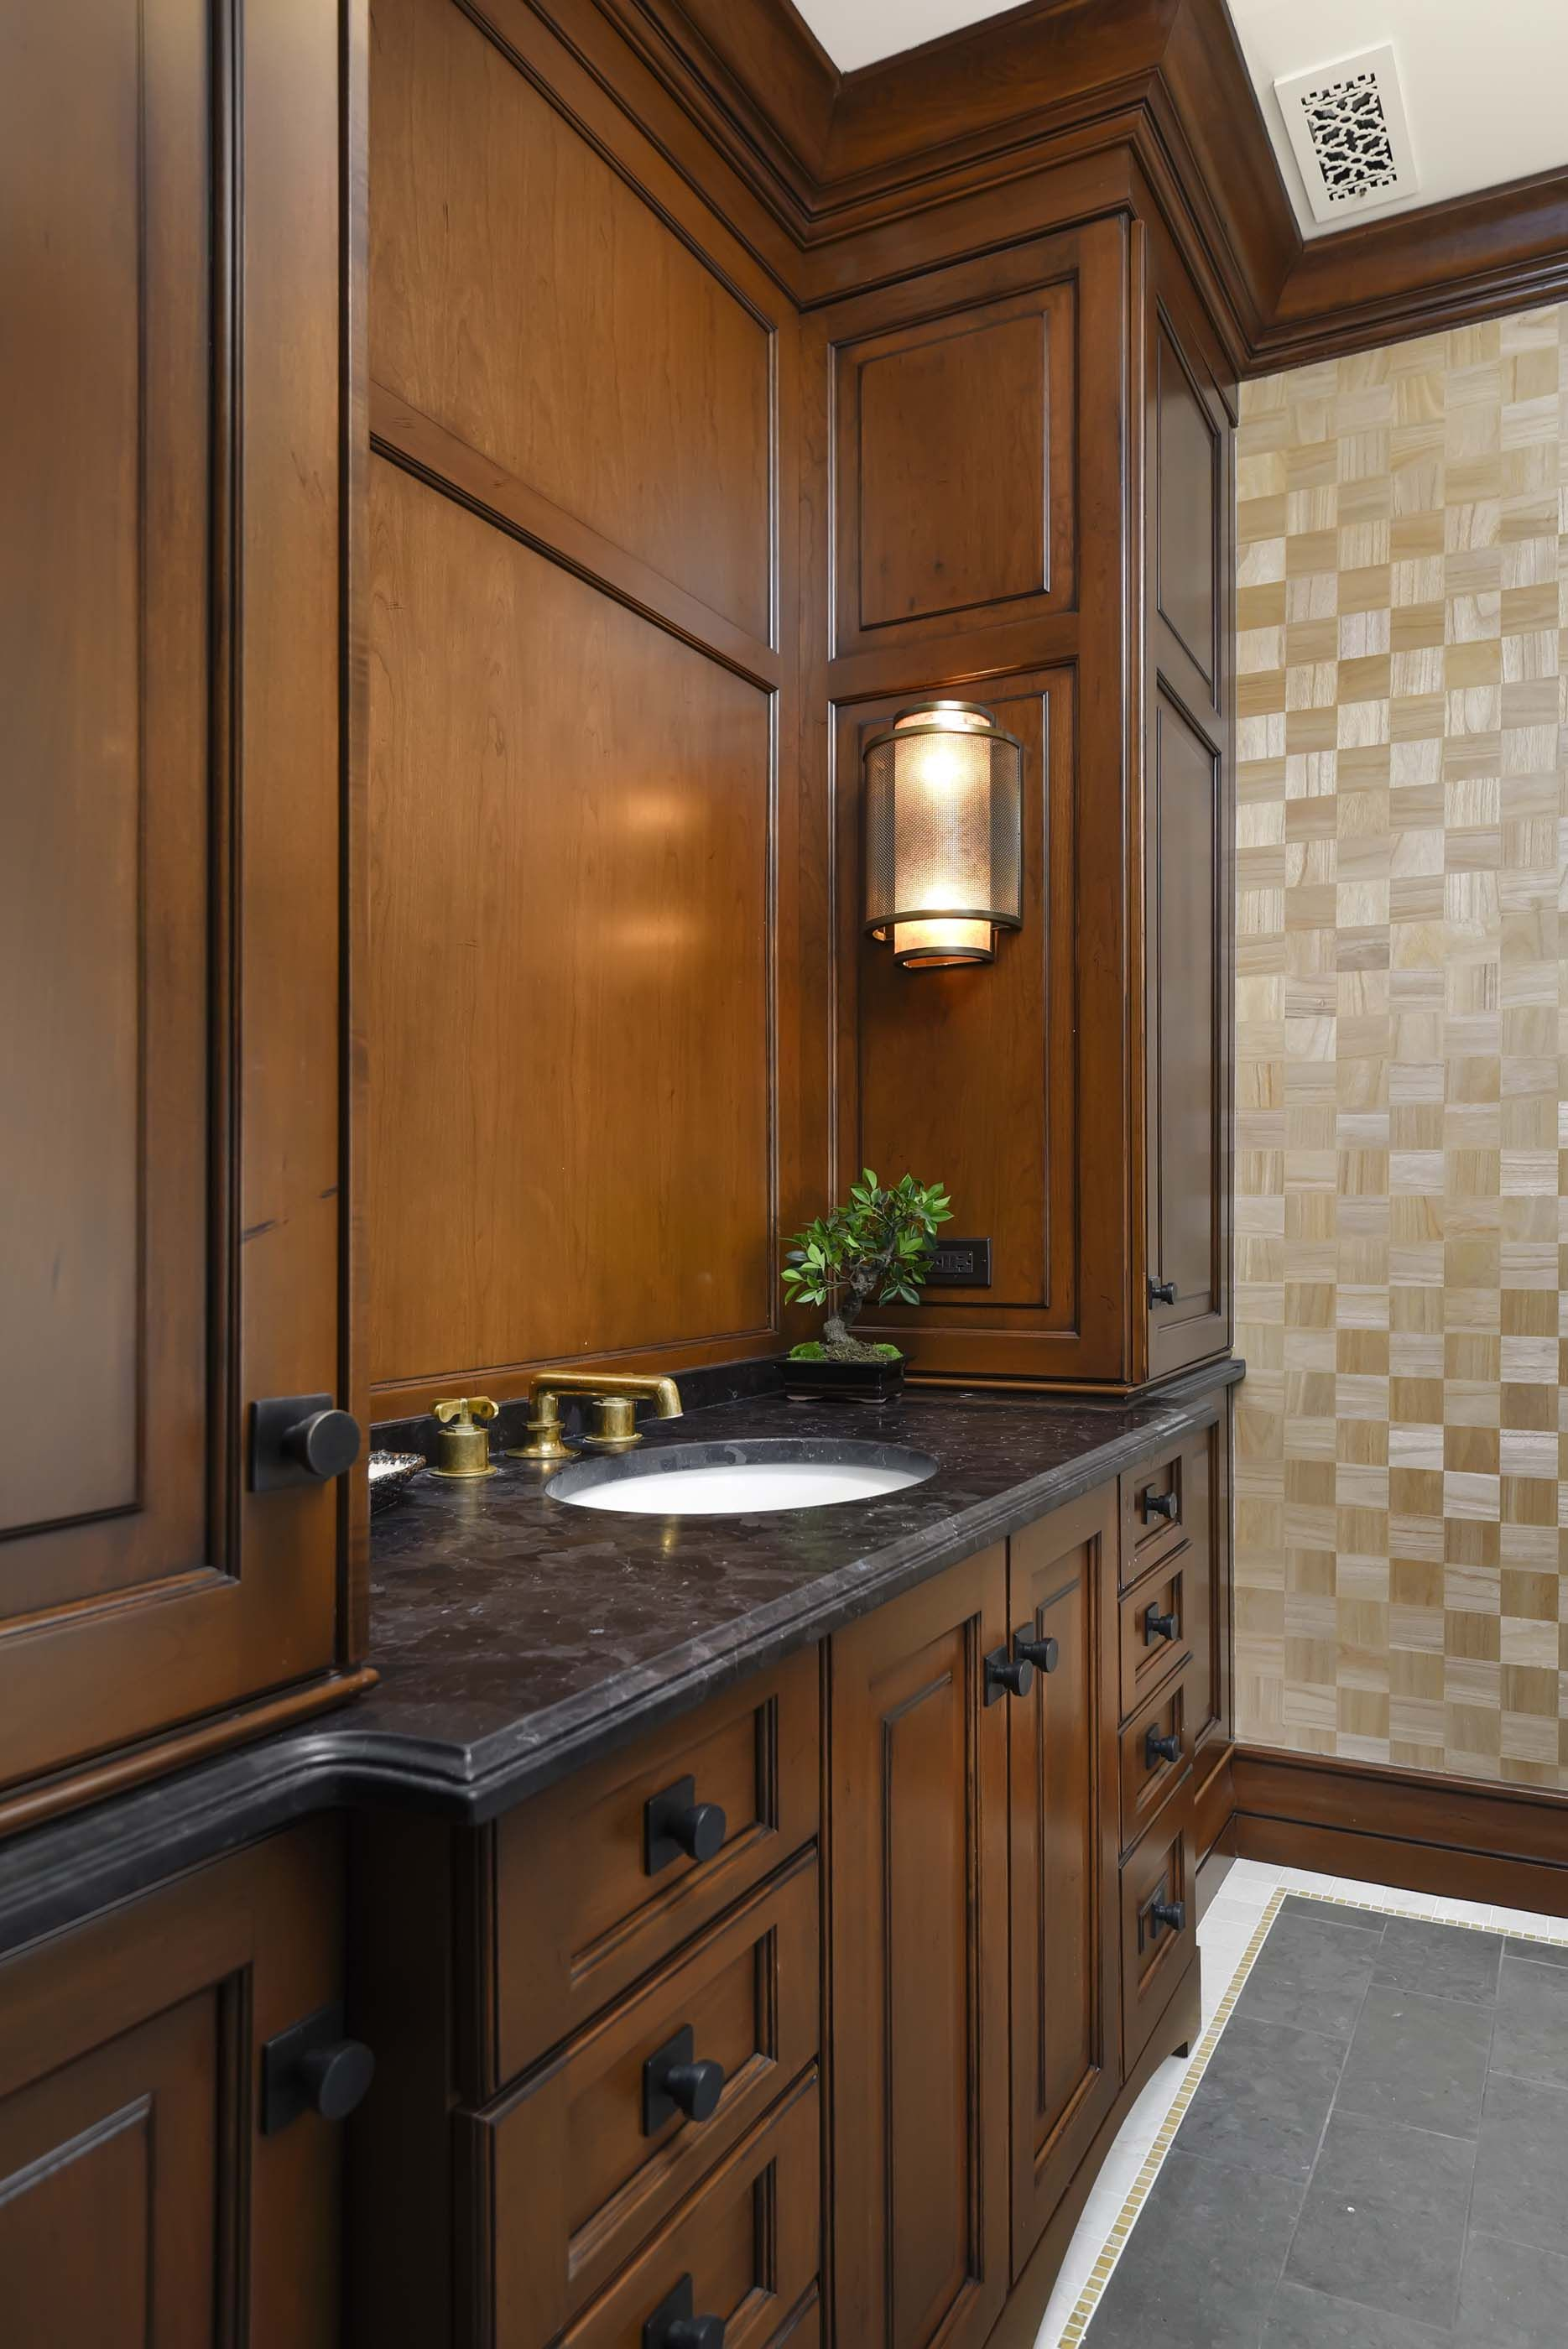 Dark Wood Paneling: Morgante Wilson Architects Used Wood Paneling And A Dark